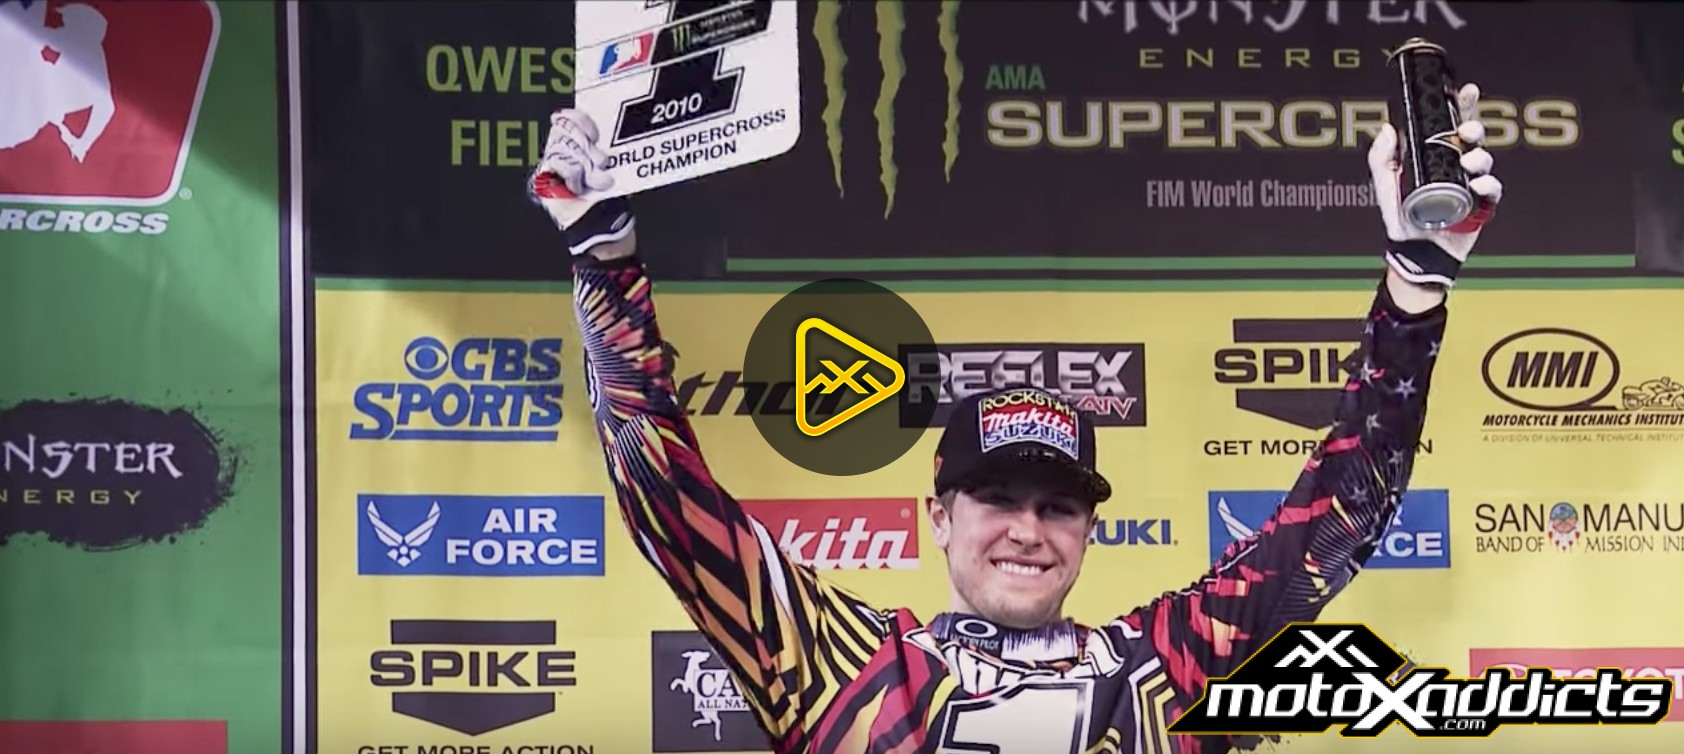 Tribute to Ryan Dungey from Monster Energy SX